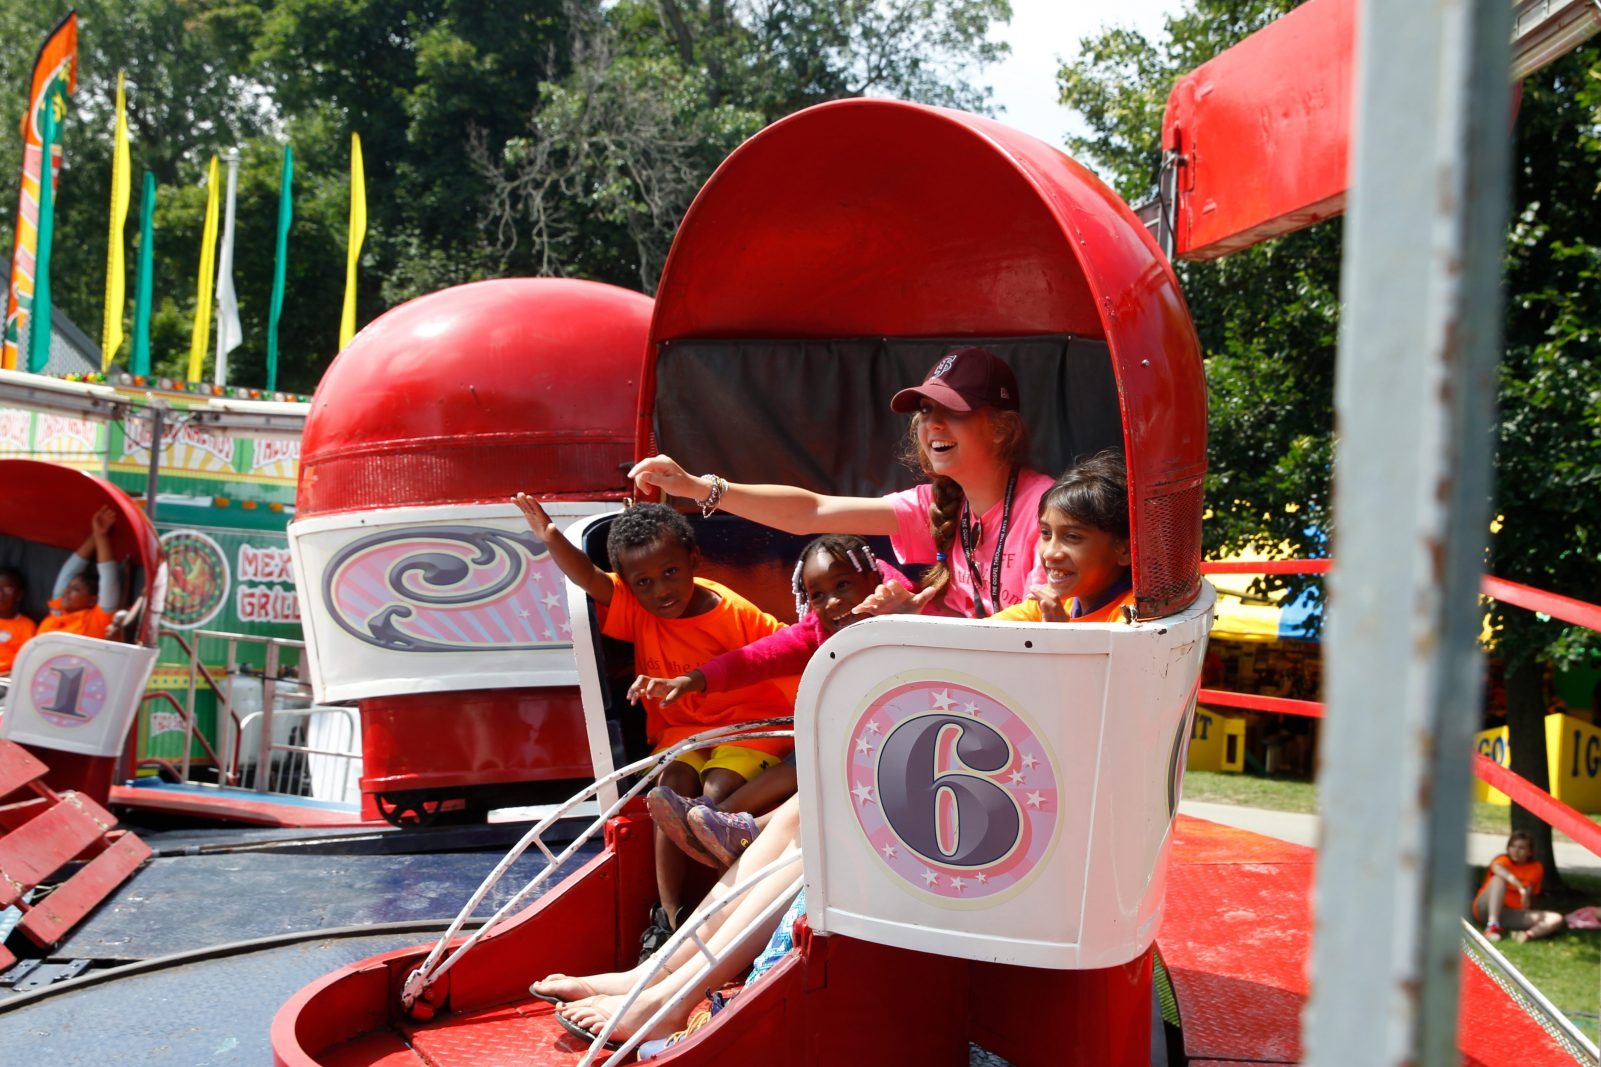 Markawan and Amanda with Camp Counselor Jessie Teiboeo and Genesis ride Tilt a Whirl at the Old Home Days Celebration in Island Park, in Williamsville, N.Y., on Wednesday, July 8, 2015.The group was from St. Luke Mission and part of a group called Kids from the Kingdom. (John Hickey/Buffalo News)